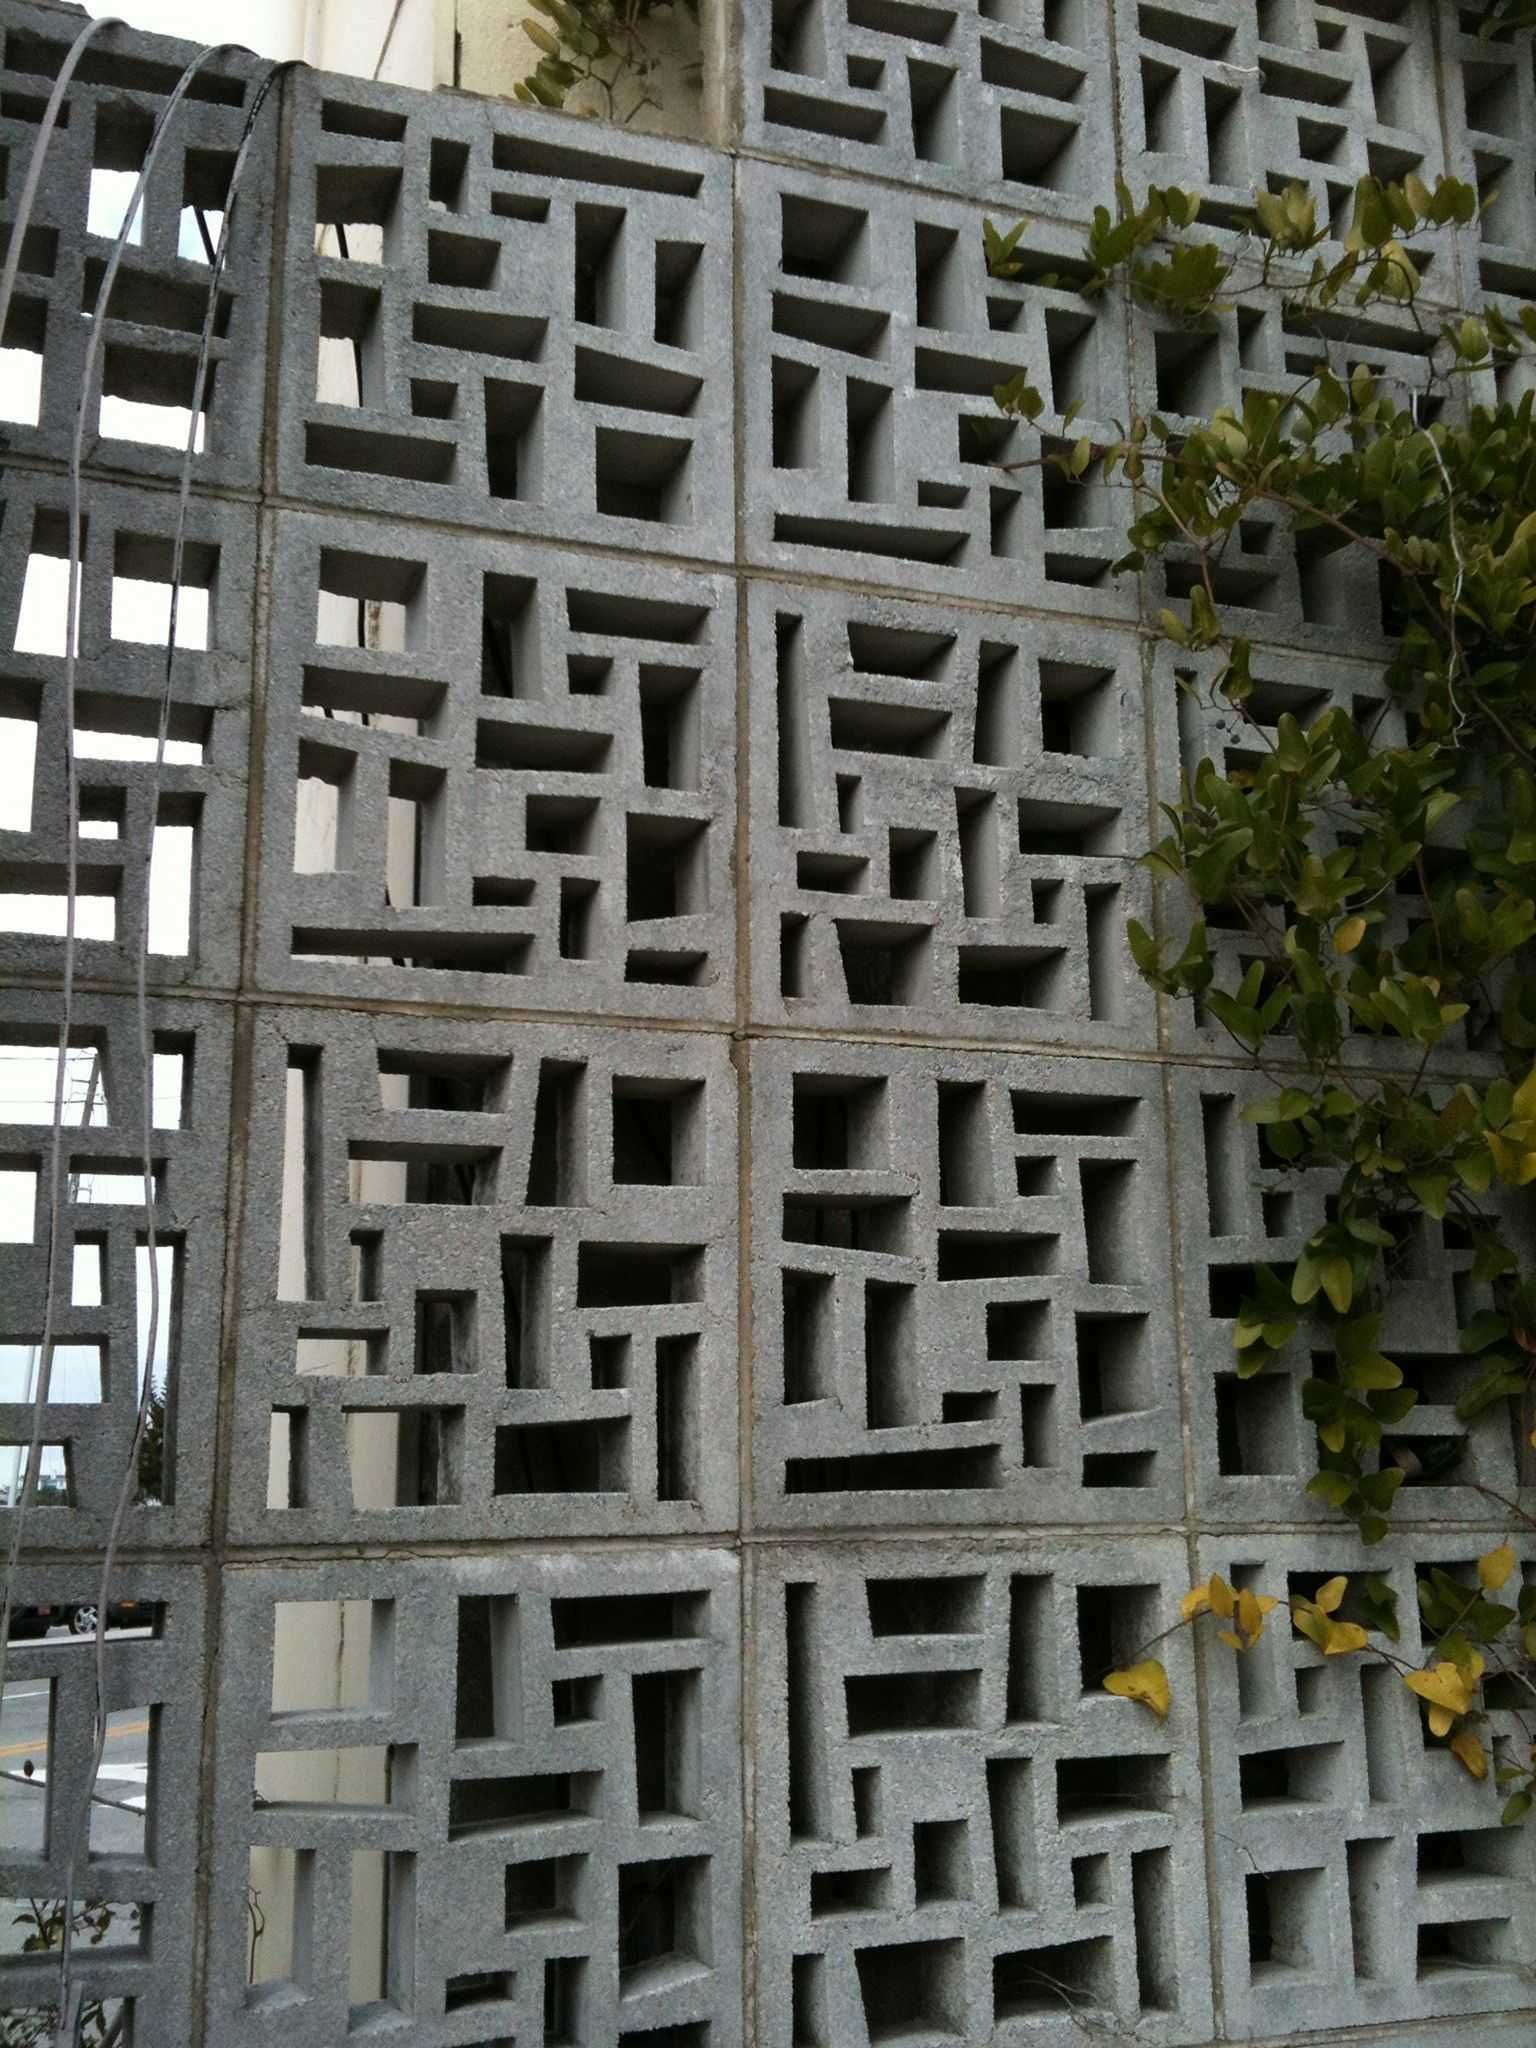 The Design Supporting The Provider Comes Out In Every Aspect On The Site The Site Design Is Quite S Decorative Concrete Blocks Breeze Block Wall Breeze Blocks